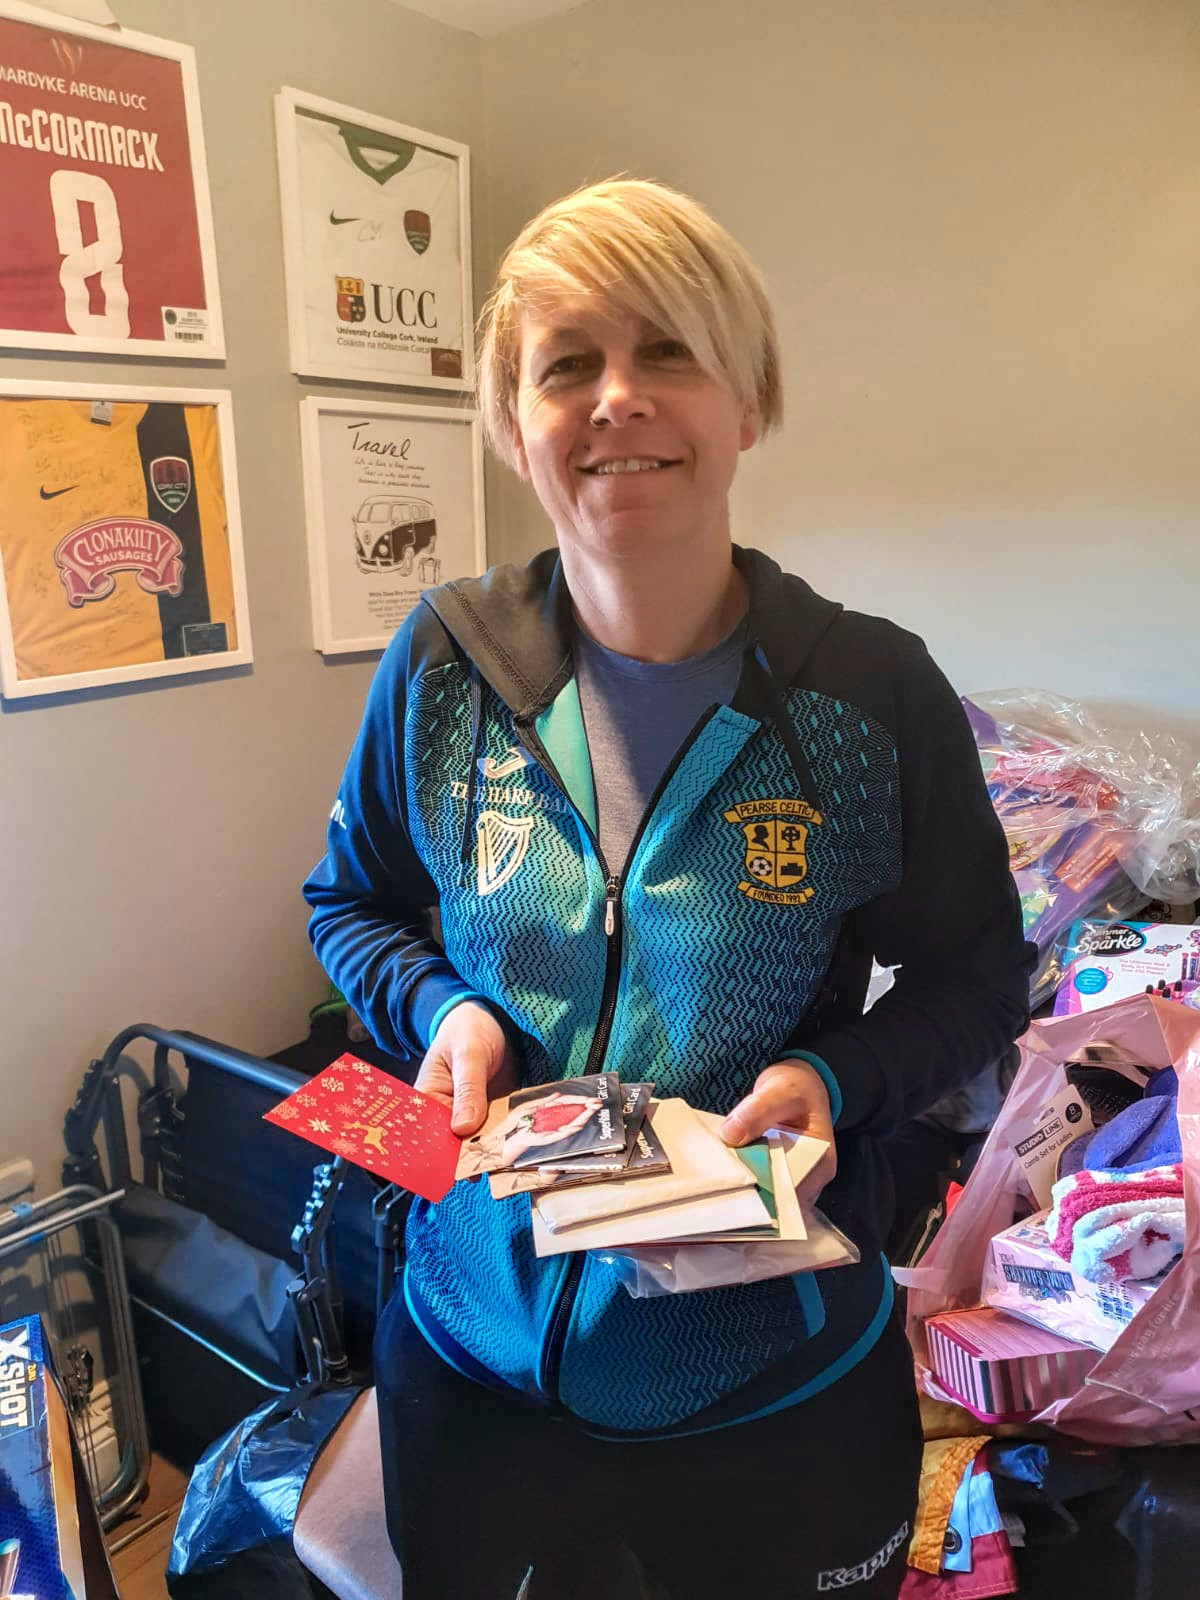 Republican Socialist Aid – Cork IRSP receive community donations of toys, new clothes and vouchers in run-up to Christmas